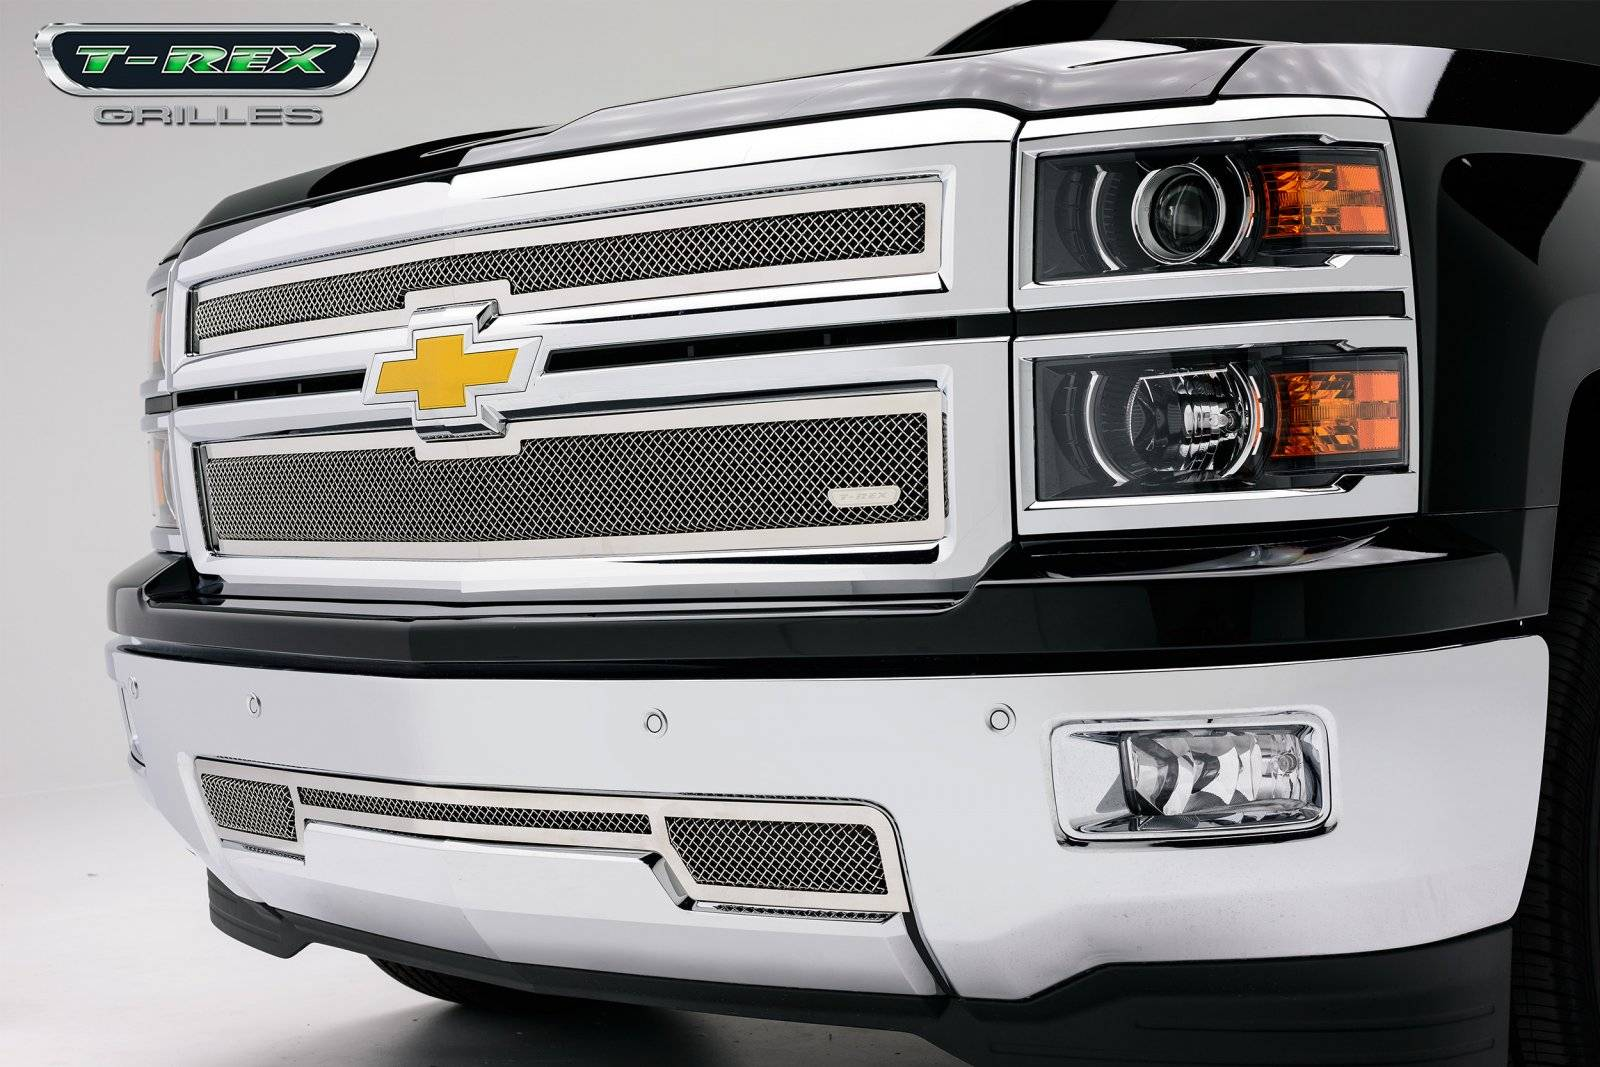 T-REX Grilles - Chevrolet Silverado Upper Class Polished Stainless Main Grille - 2 PC Style - Pt # 54117